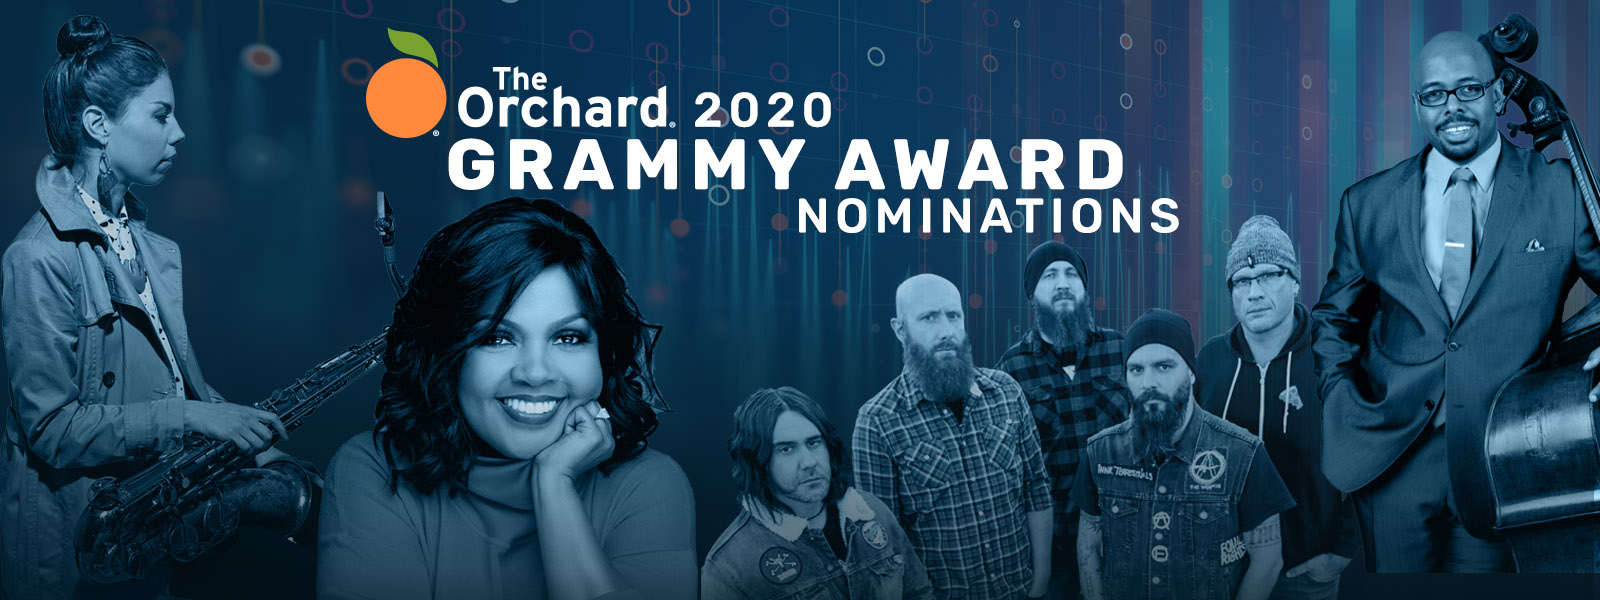 The Orchard Lists Their Distributed 2020 GRAMMY Award Nominees